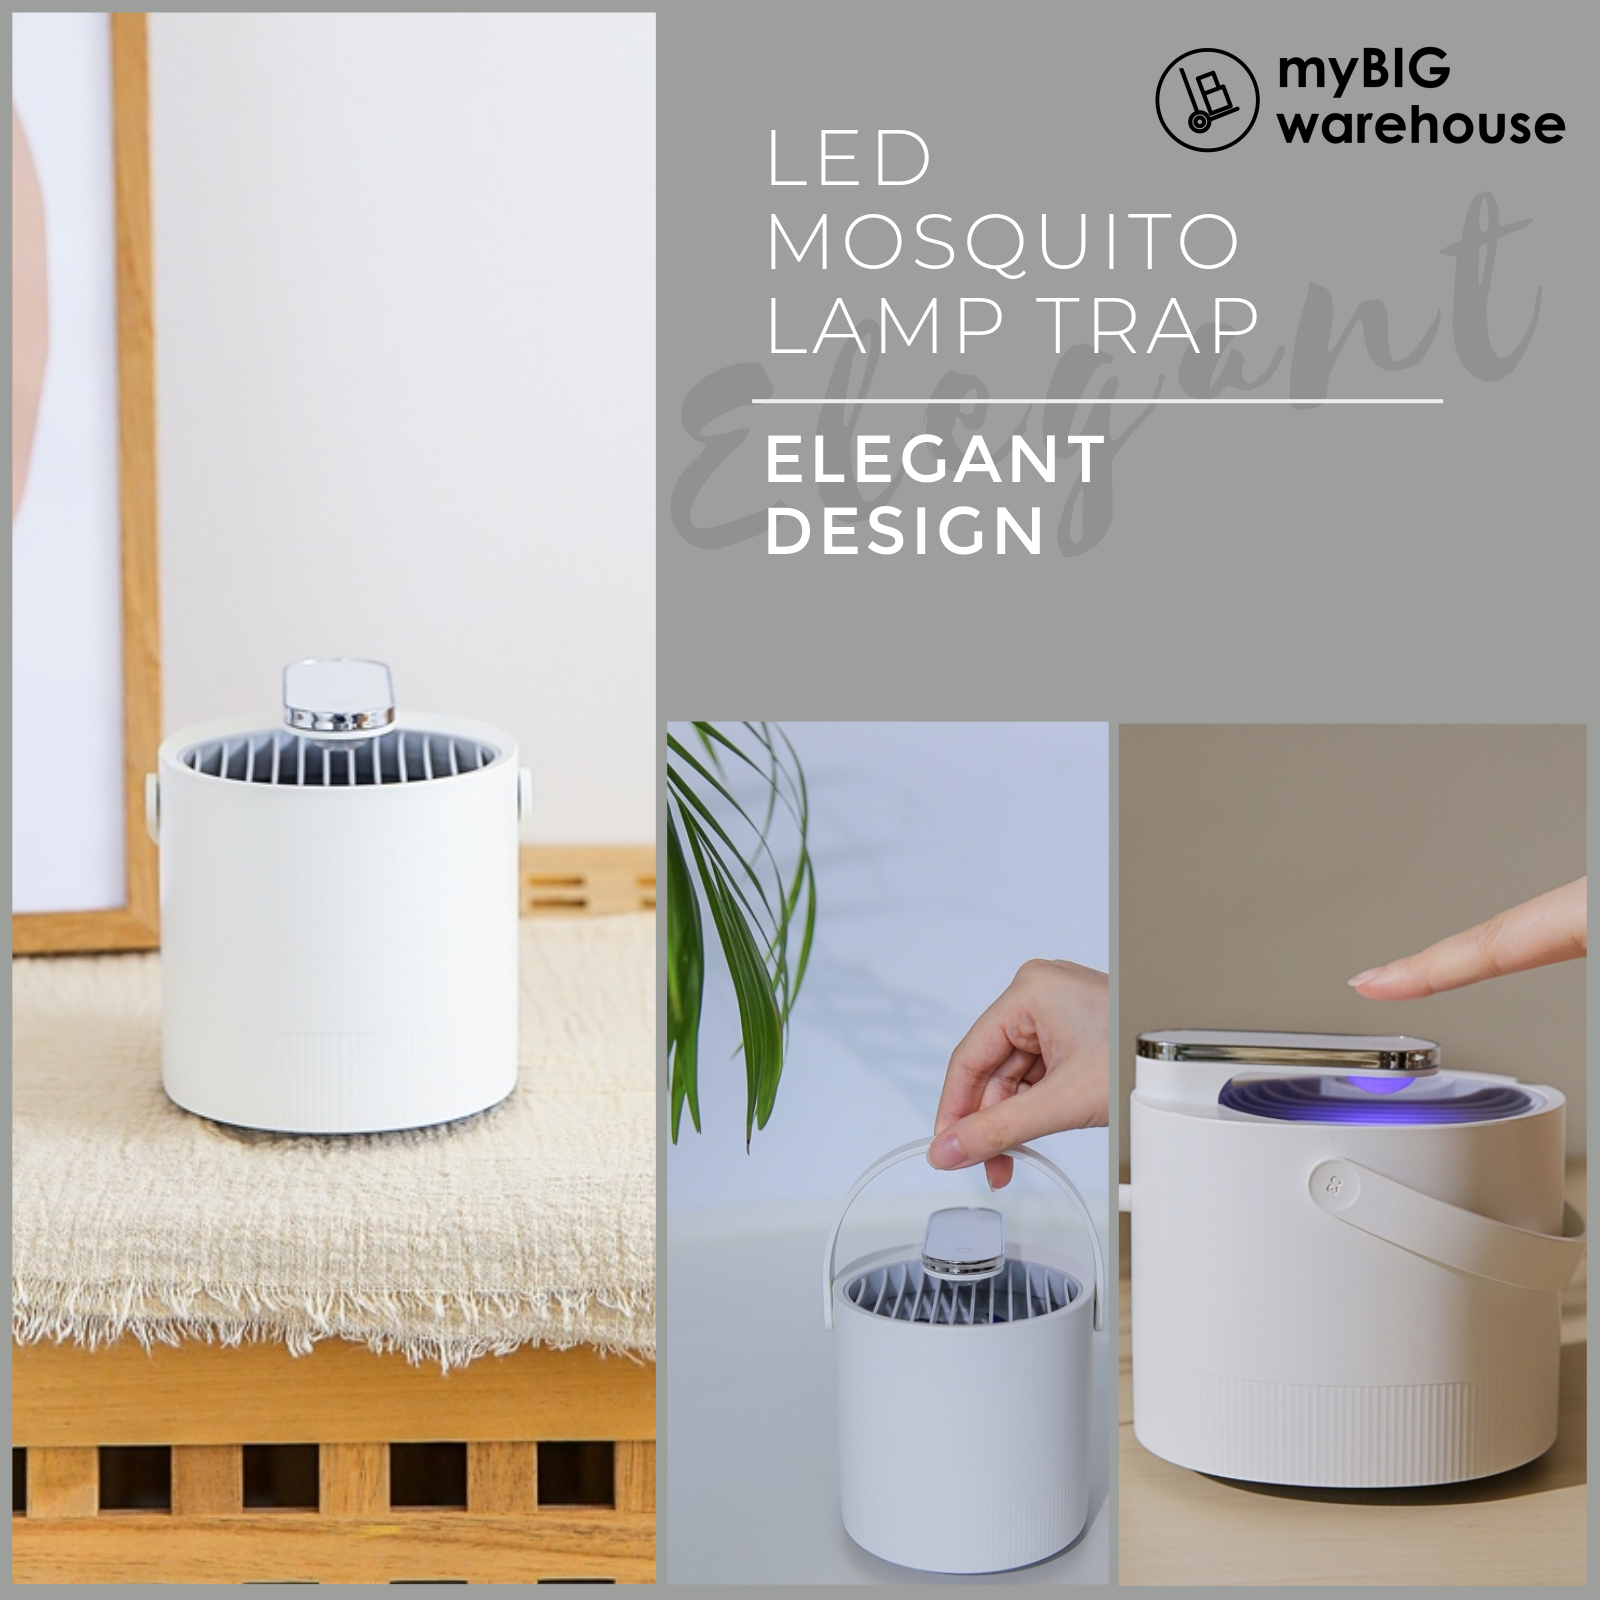 LED MOSQUITO LAMP TRAP COLLAGE.jpg